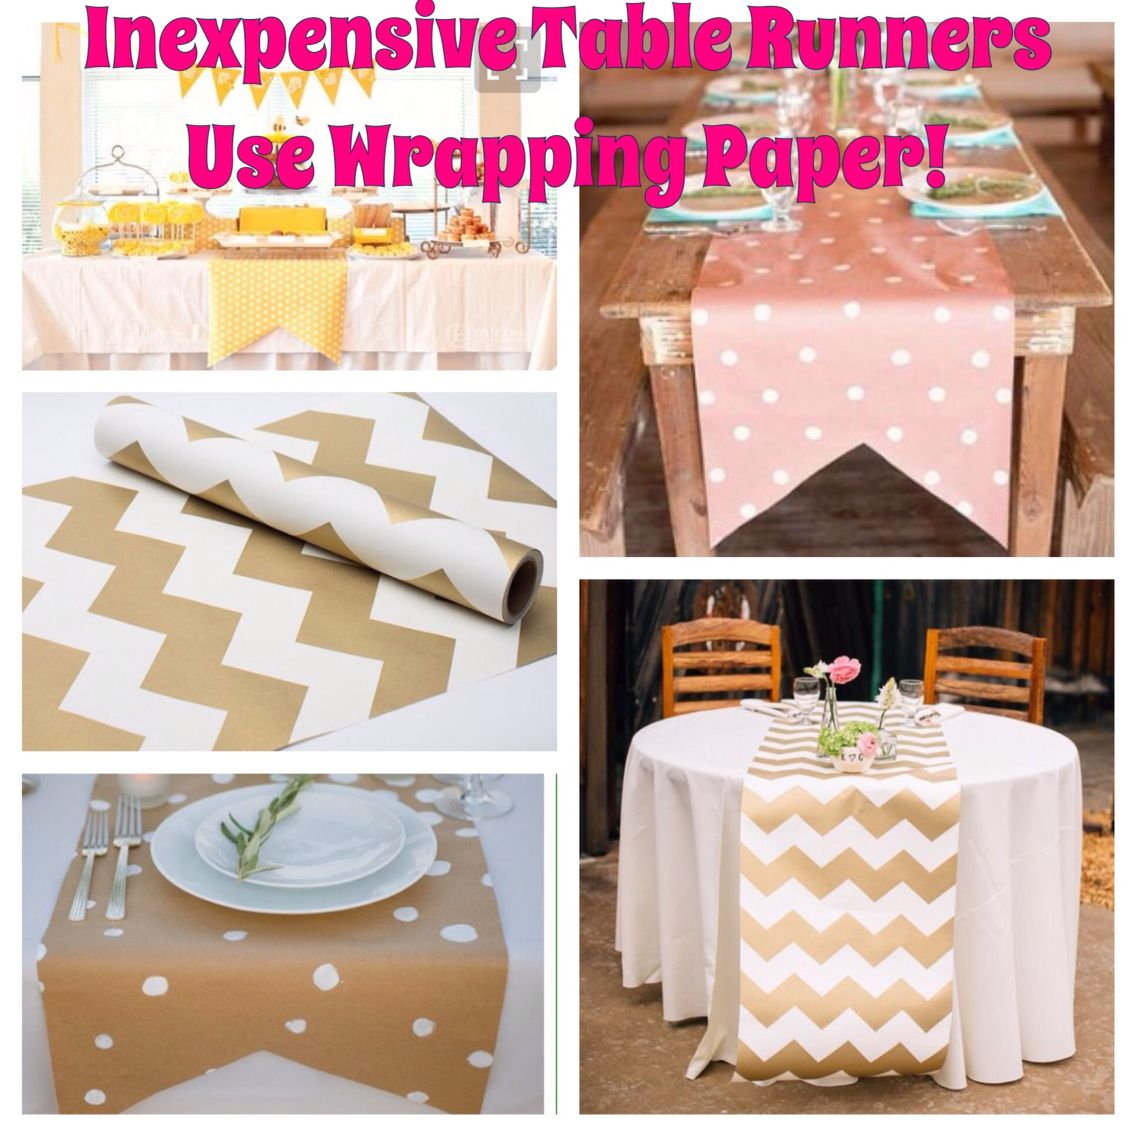 Elegant Great Way To SAVE $$ On Your Budget With Pretty Wrapping Paper Table Runners !